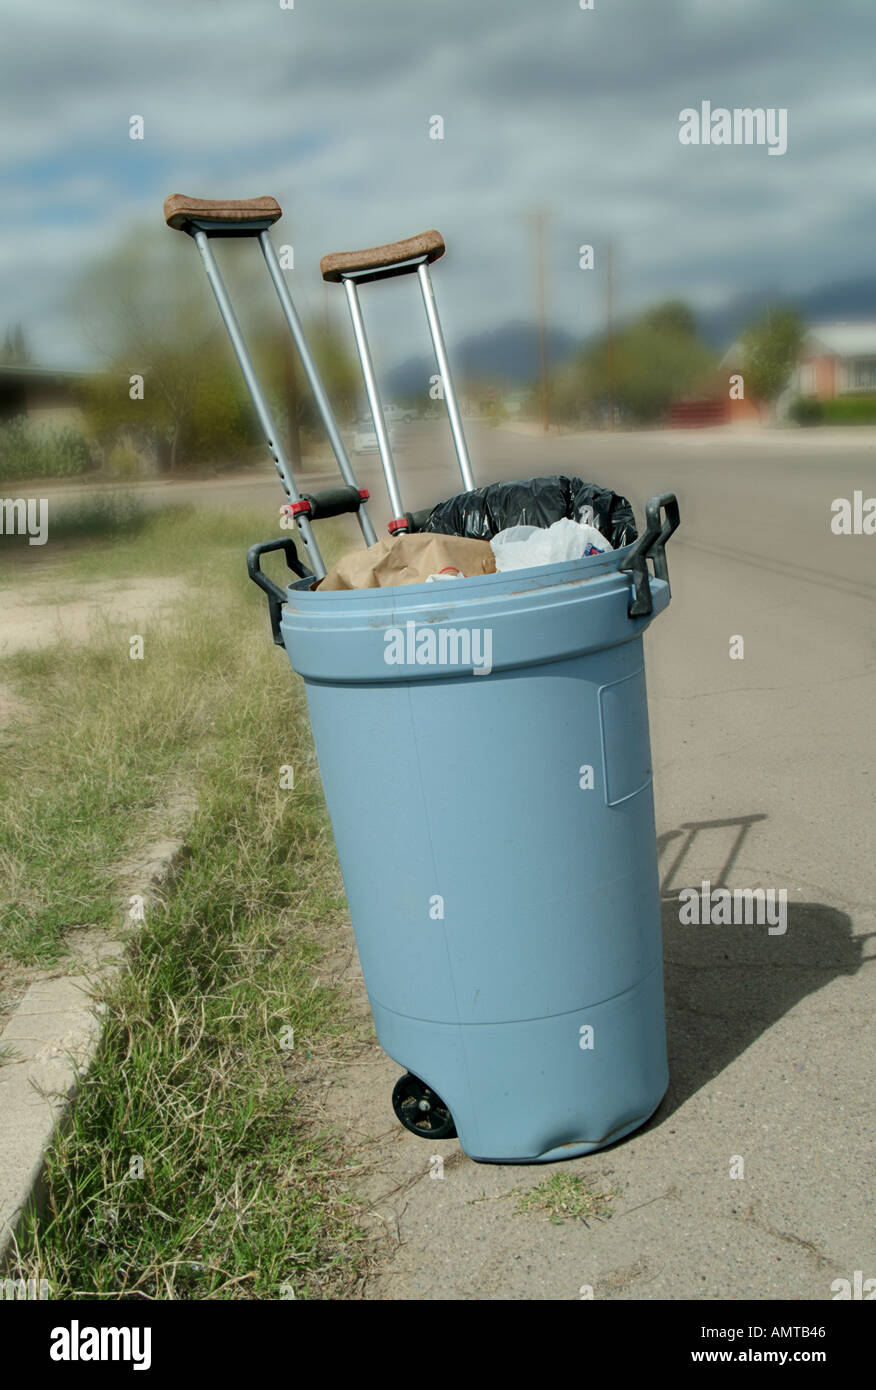 Crutches that are no longer needed in a trash can by the side of the road - Stock Image